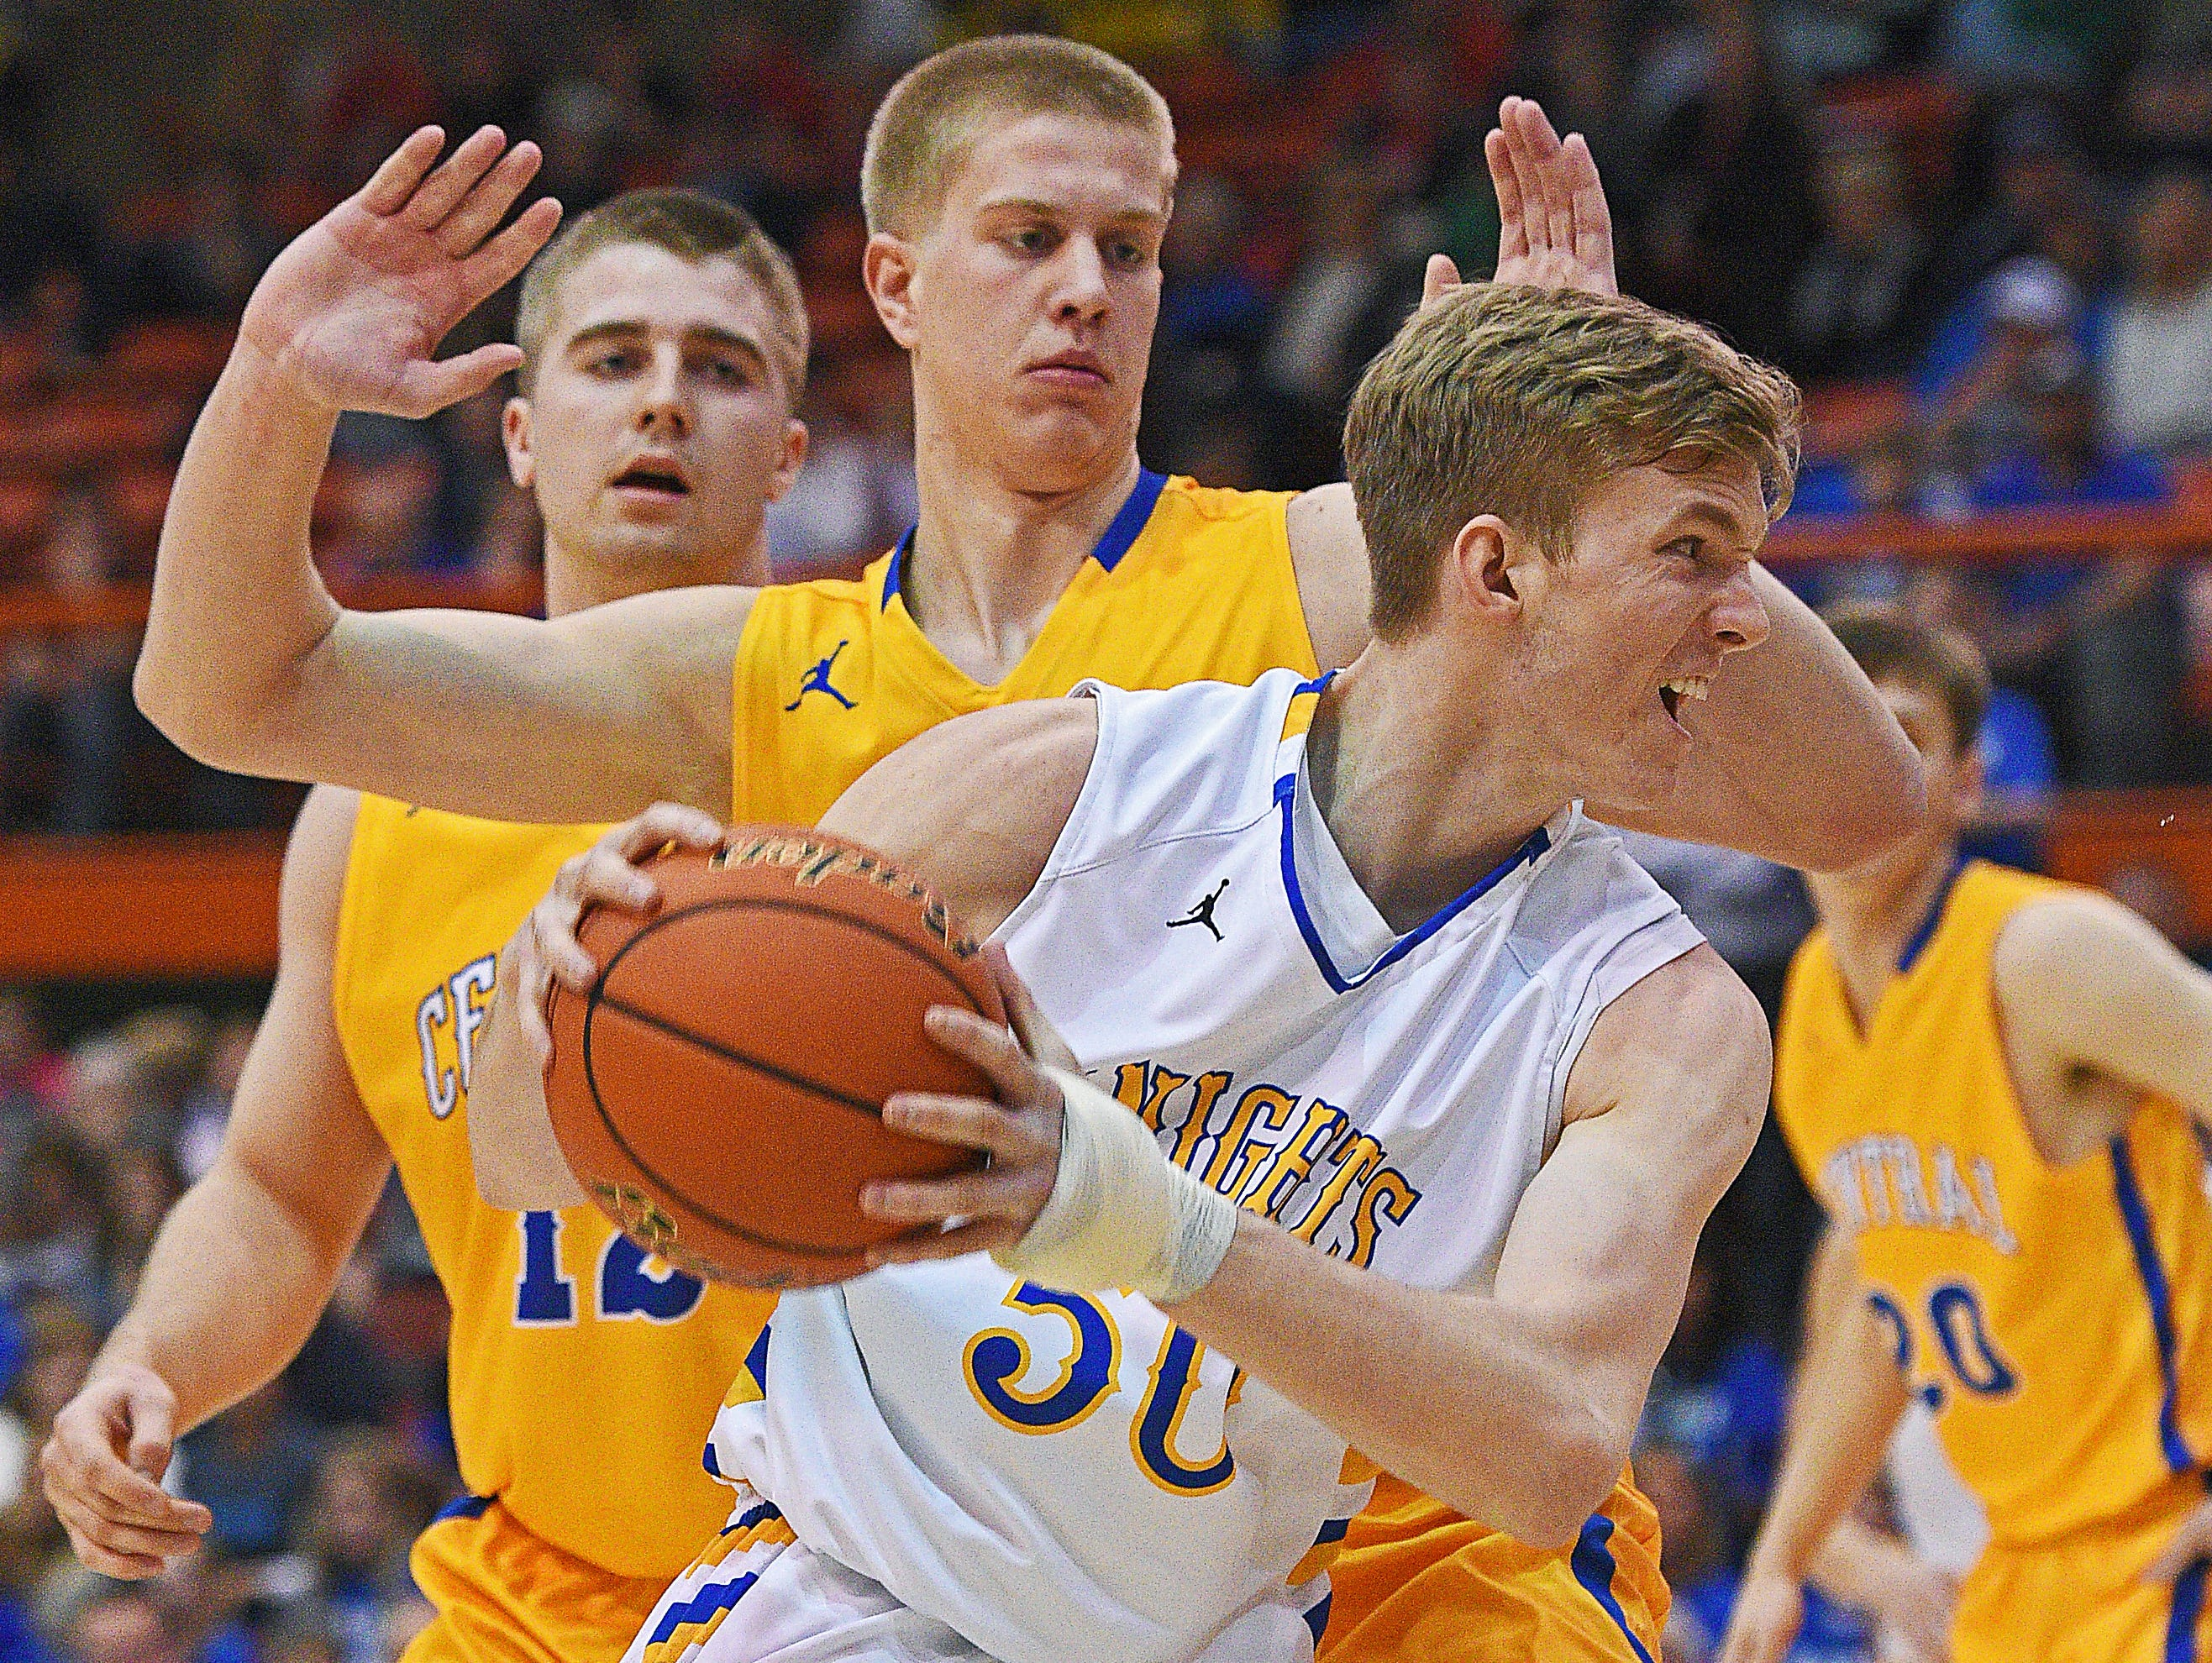 O'Gorman's JP Costello (50) drives to the basket past Aberdeen Central's Cole Bergan (40) during the 2017 SDHSAA Class AA State Boys Basketball championship game Saturday, March 18, 2017, at Rushmore Plaza Civic Center in Rapid City.